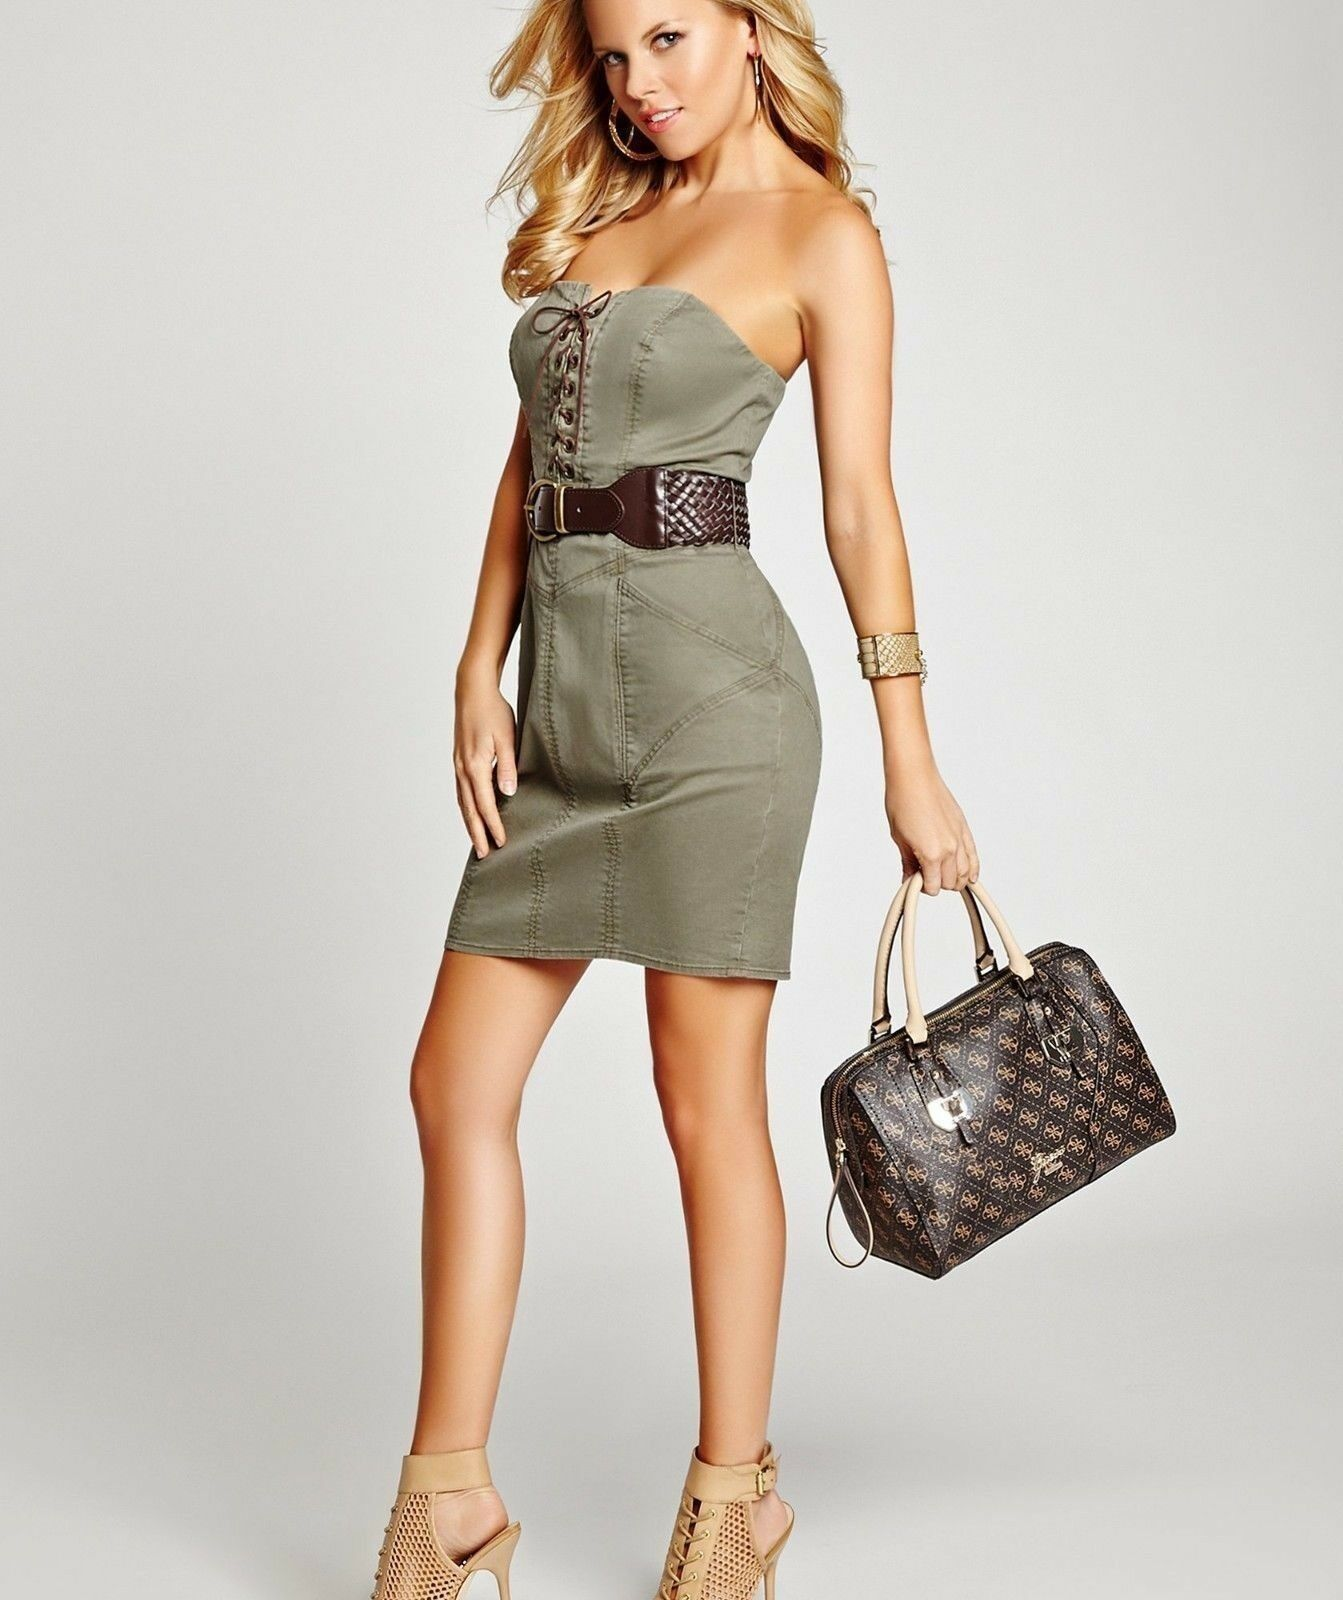 GUESS Women's sz 0 Strapless Belted Military-inspired Twill Dress